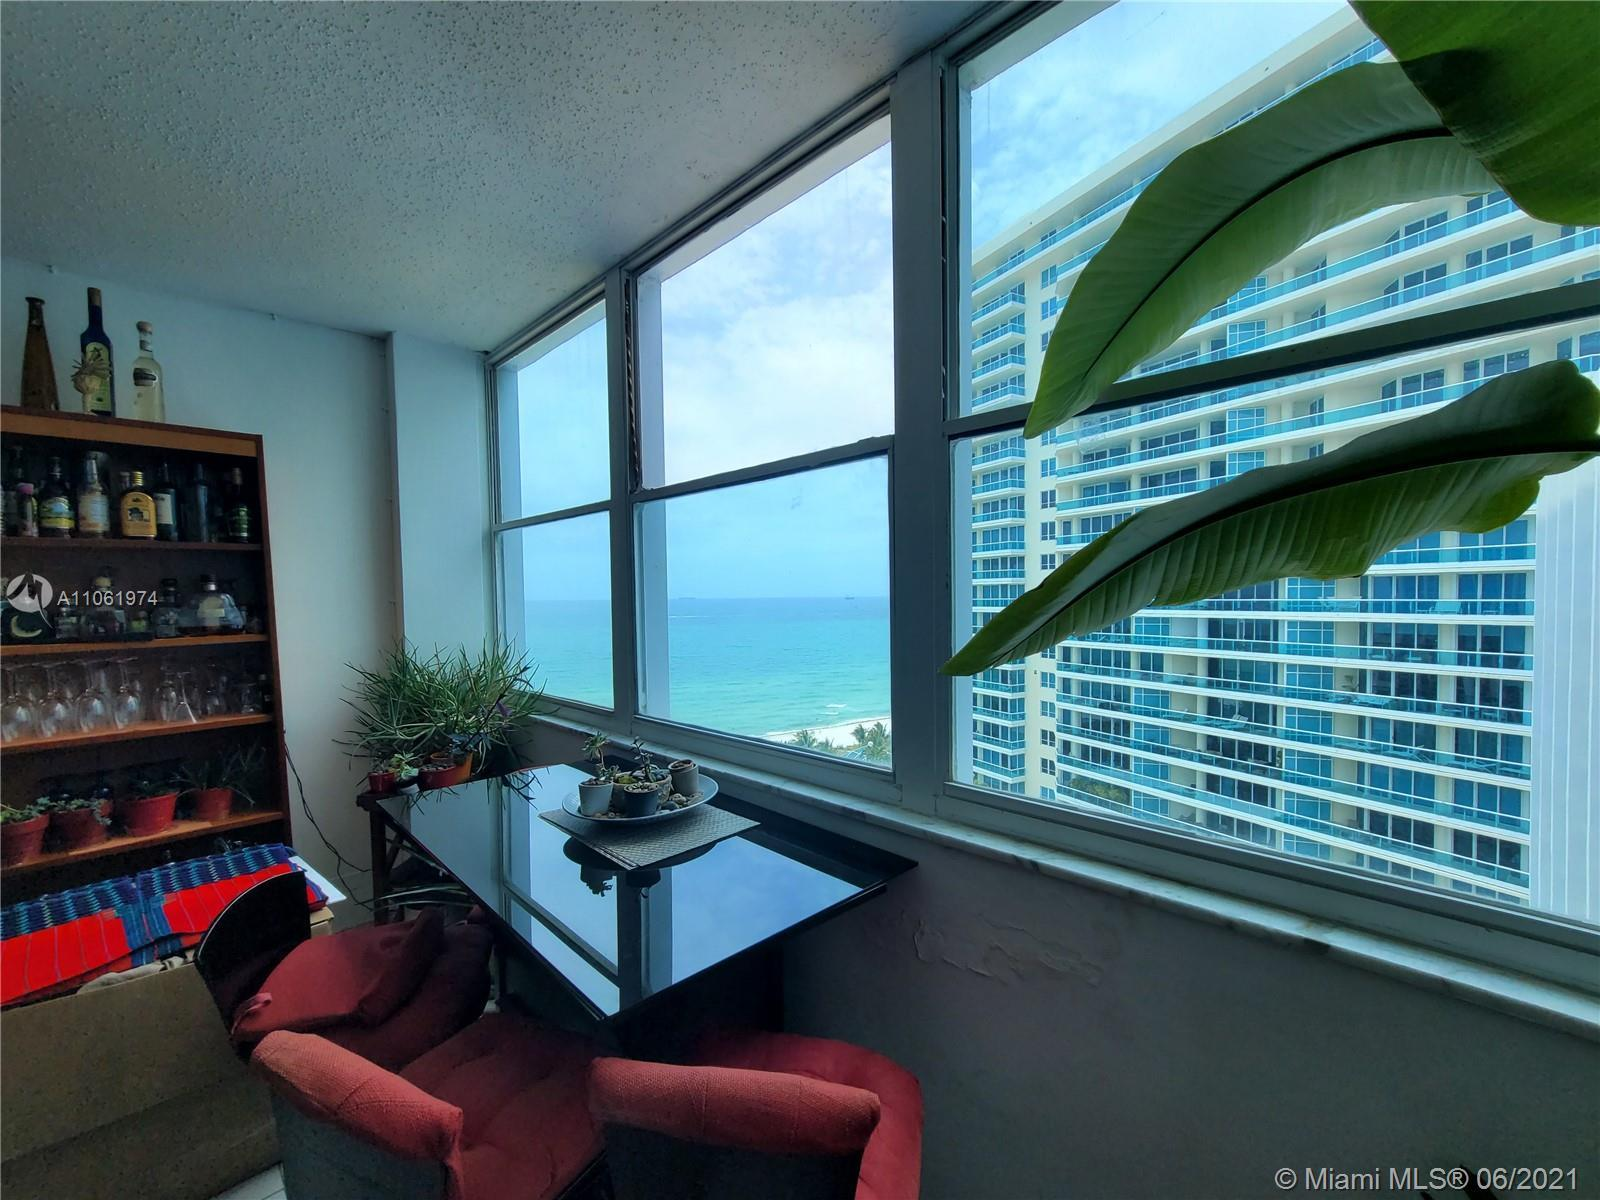 Penthouse unit available in beautiful Crystal House on Millionaire's Row directly on ocean side of C